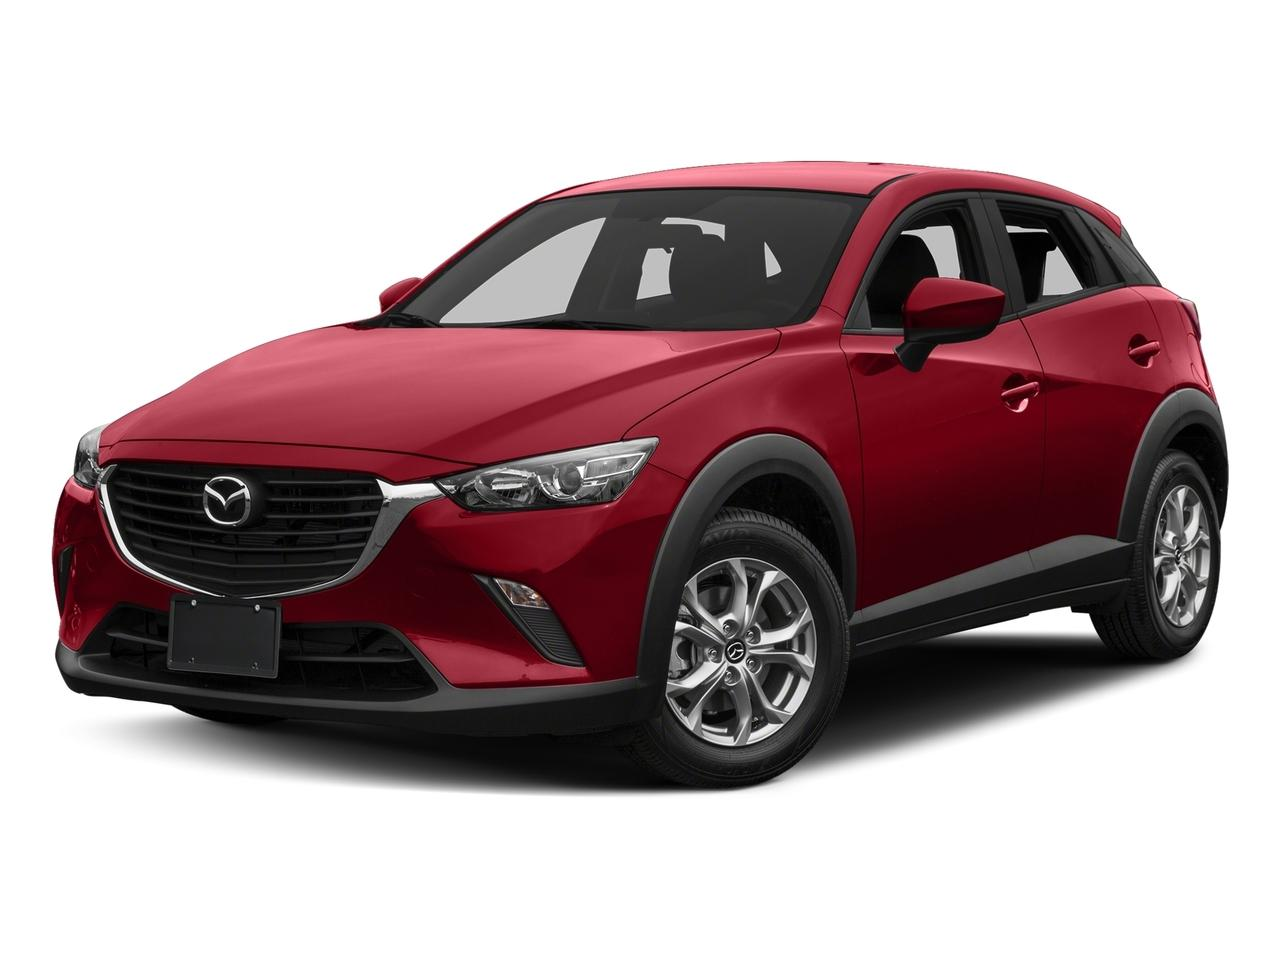 2017 Mazda CX-3 Vehicle Photo in Trevose, PA 19053